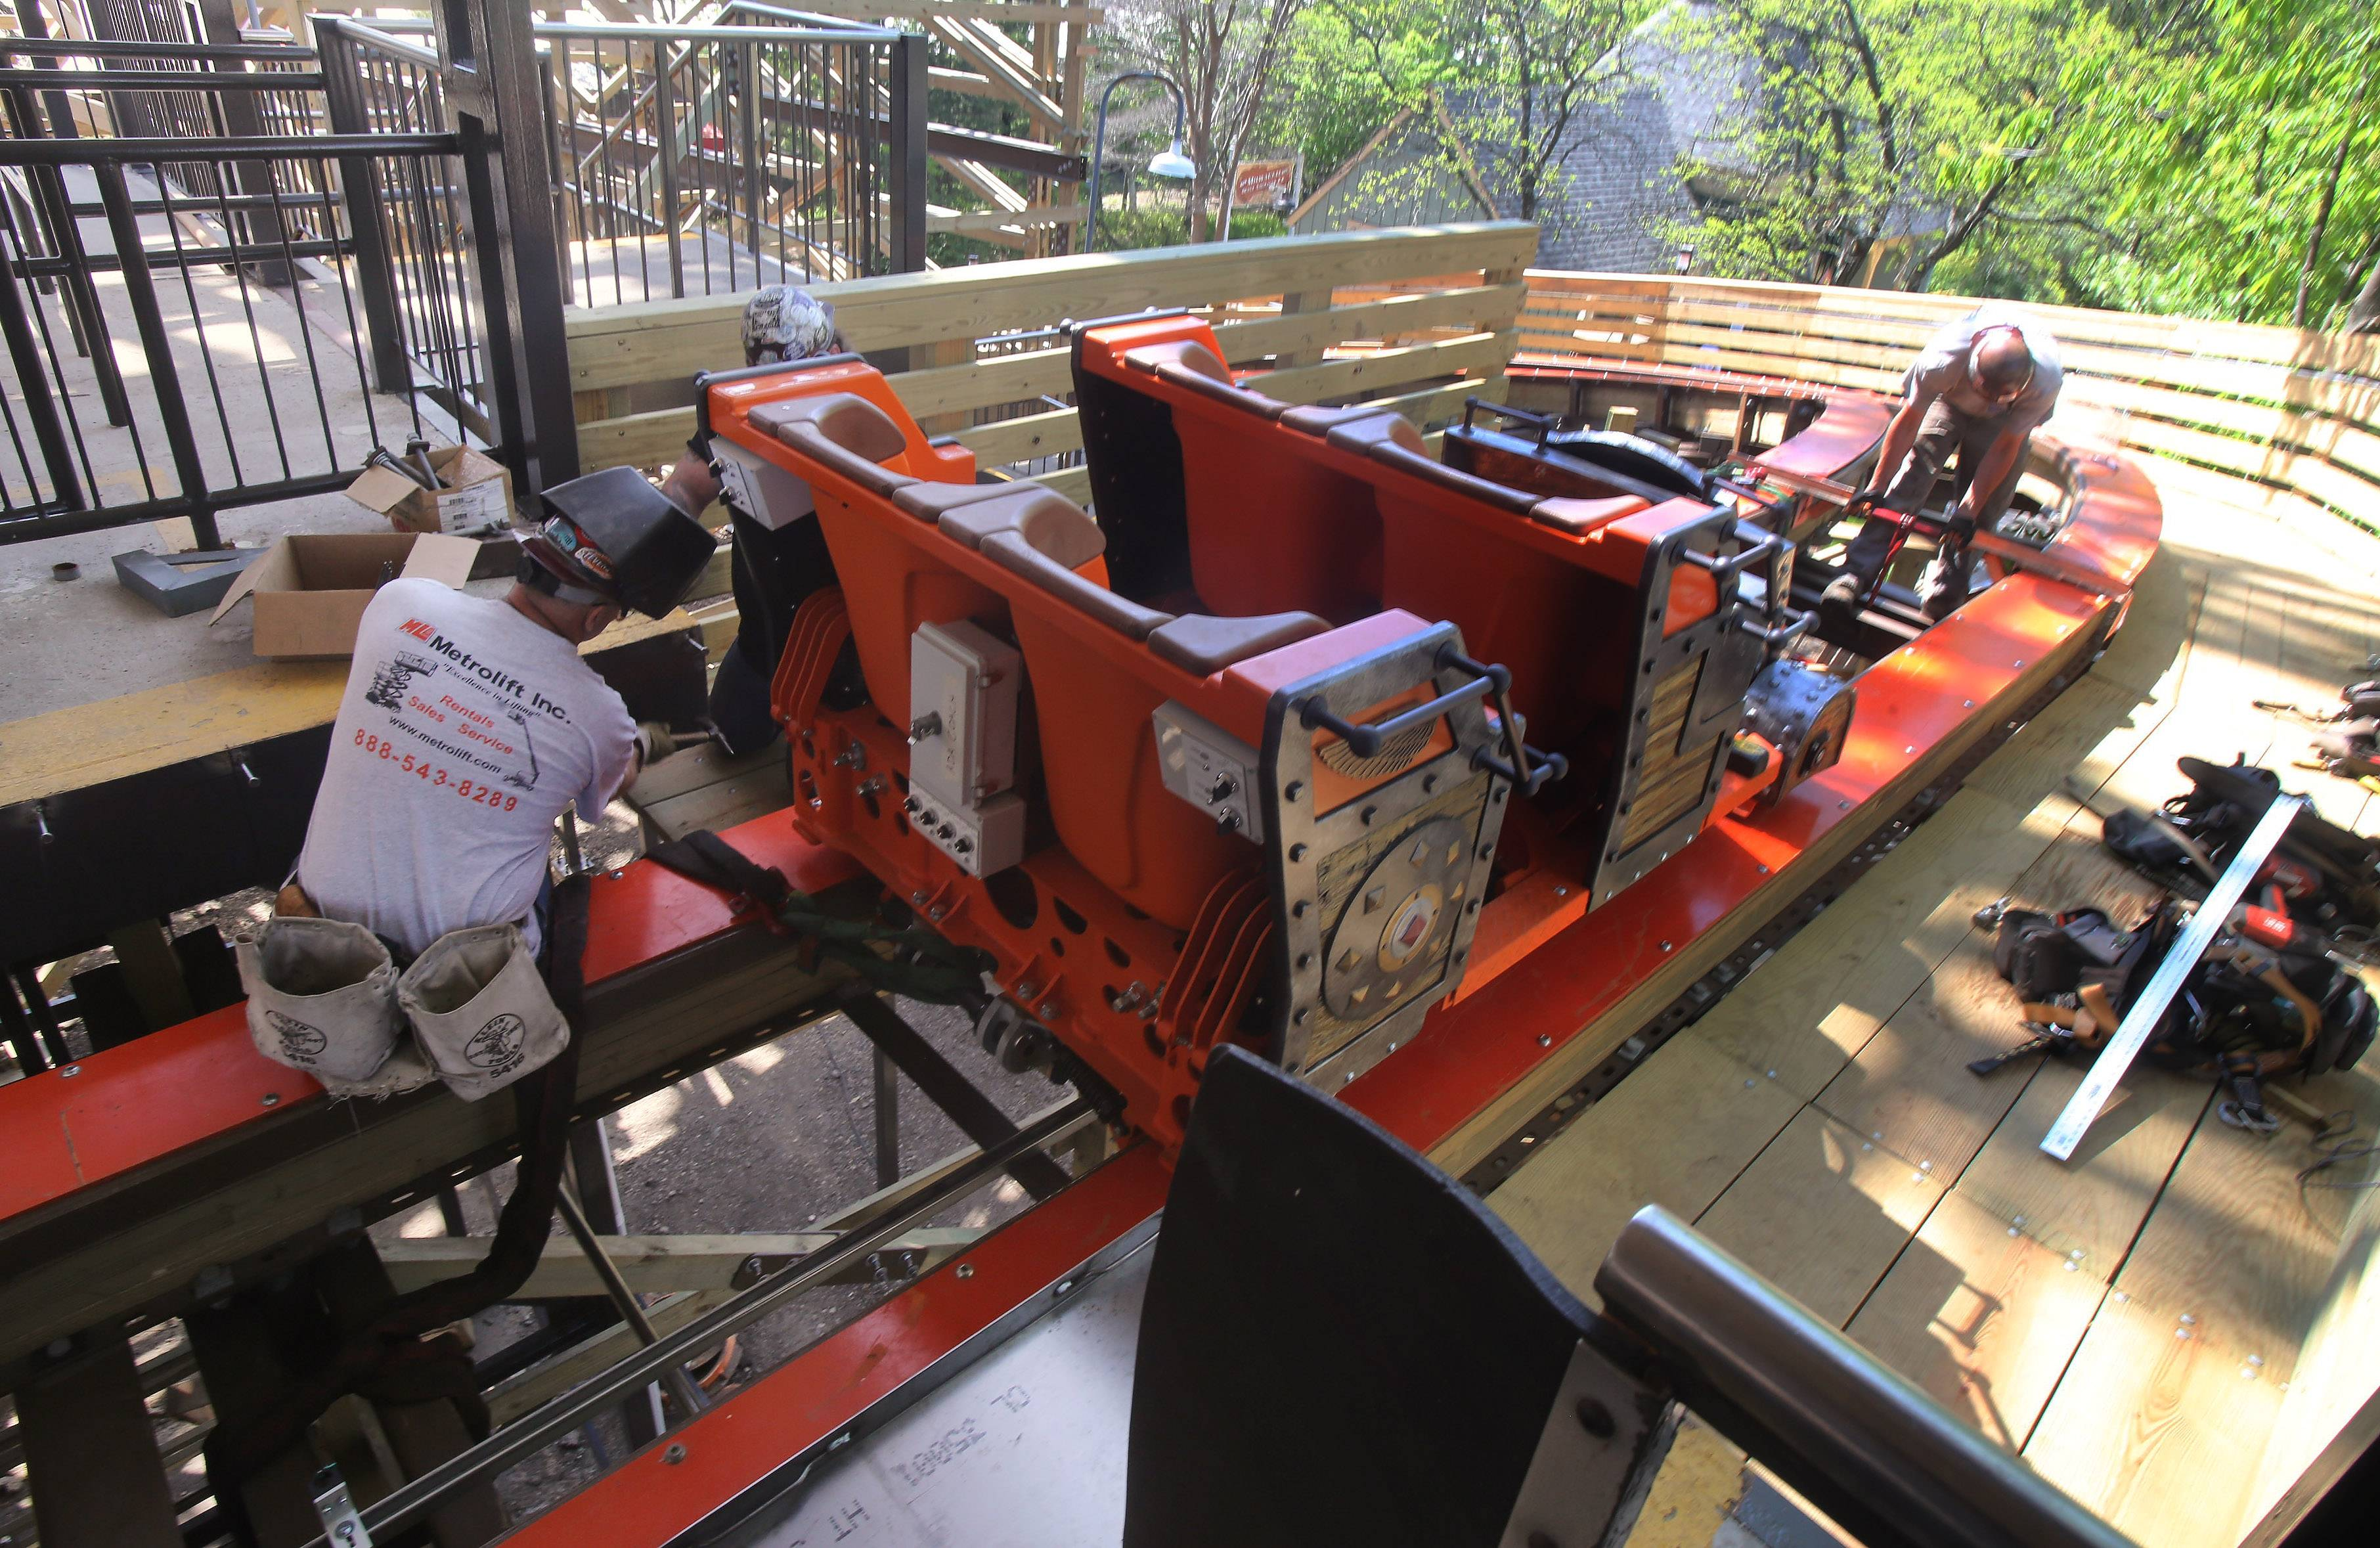 Six Flags vows smooth ride on new wooden coaster